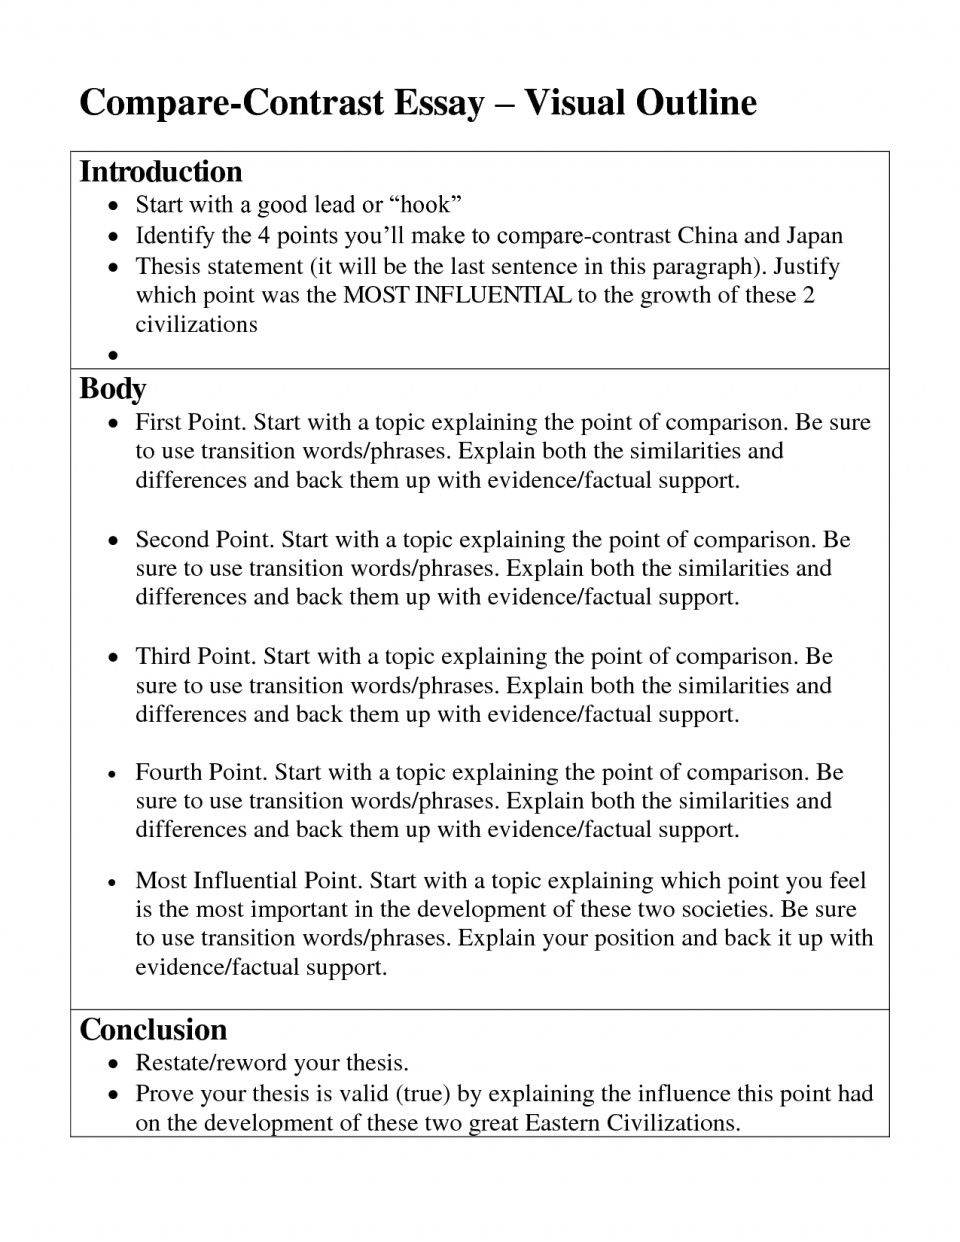 Top academic essay editing services for school